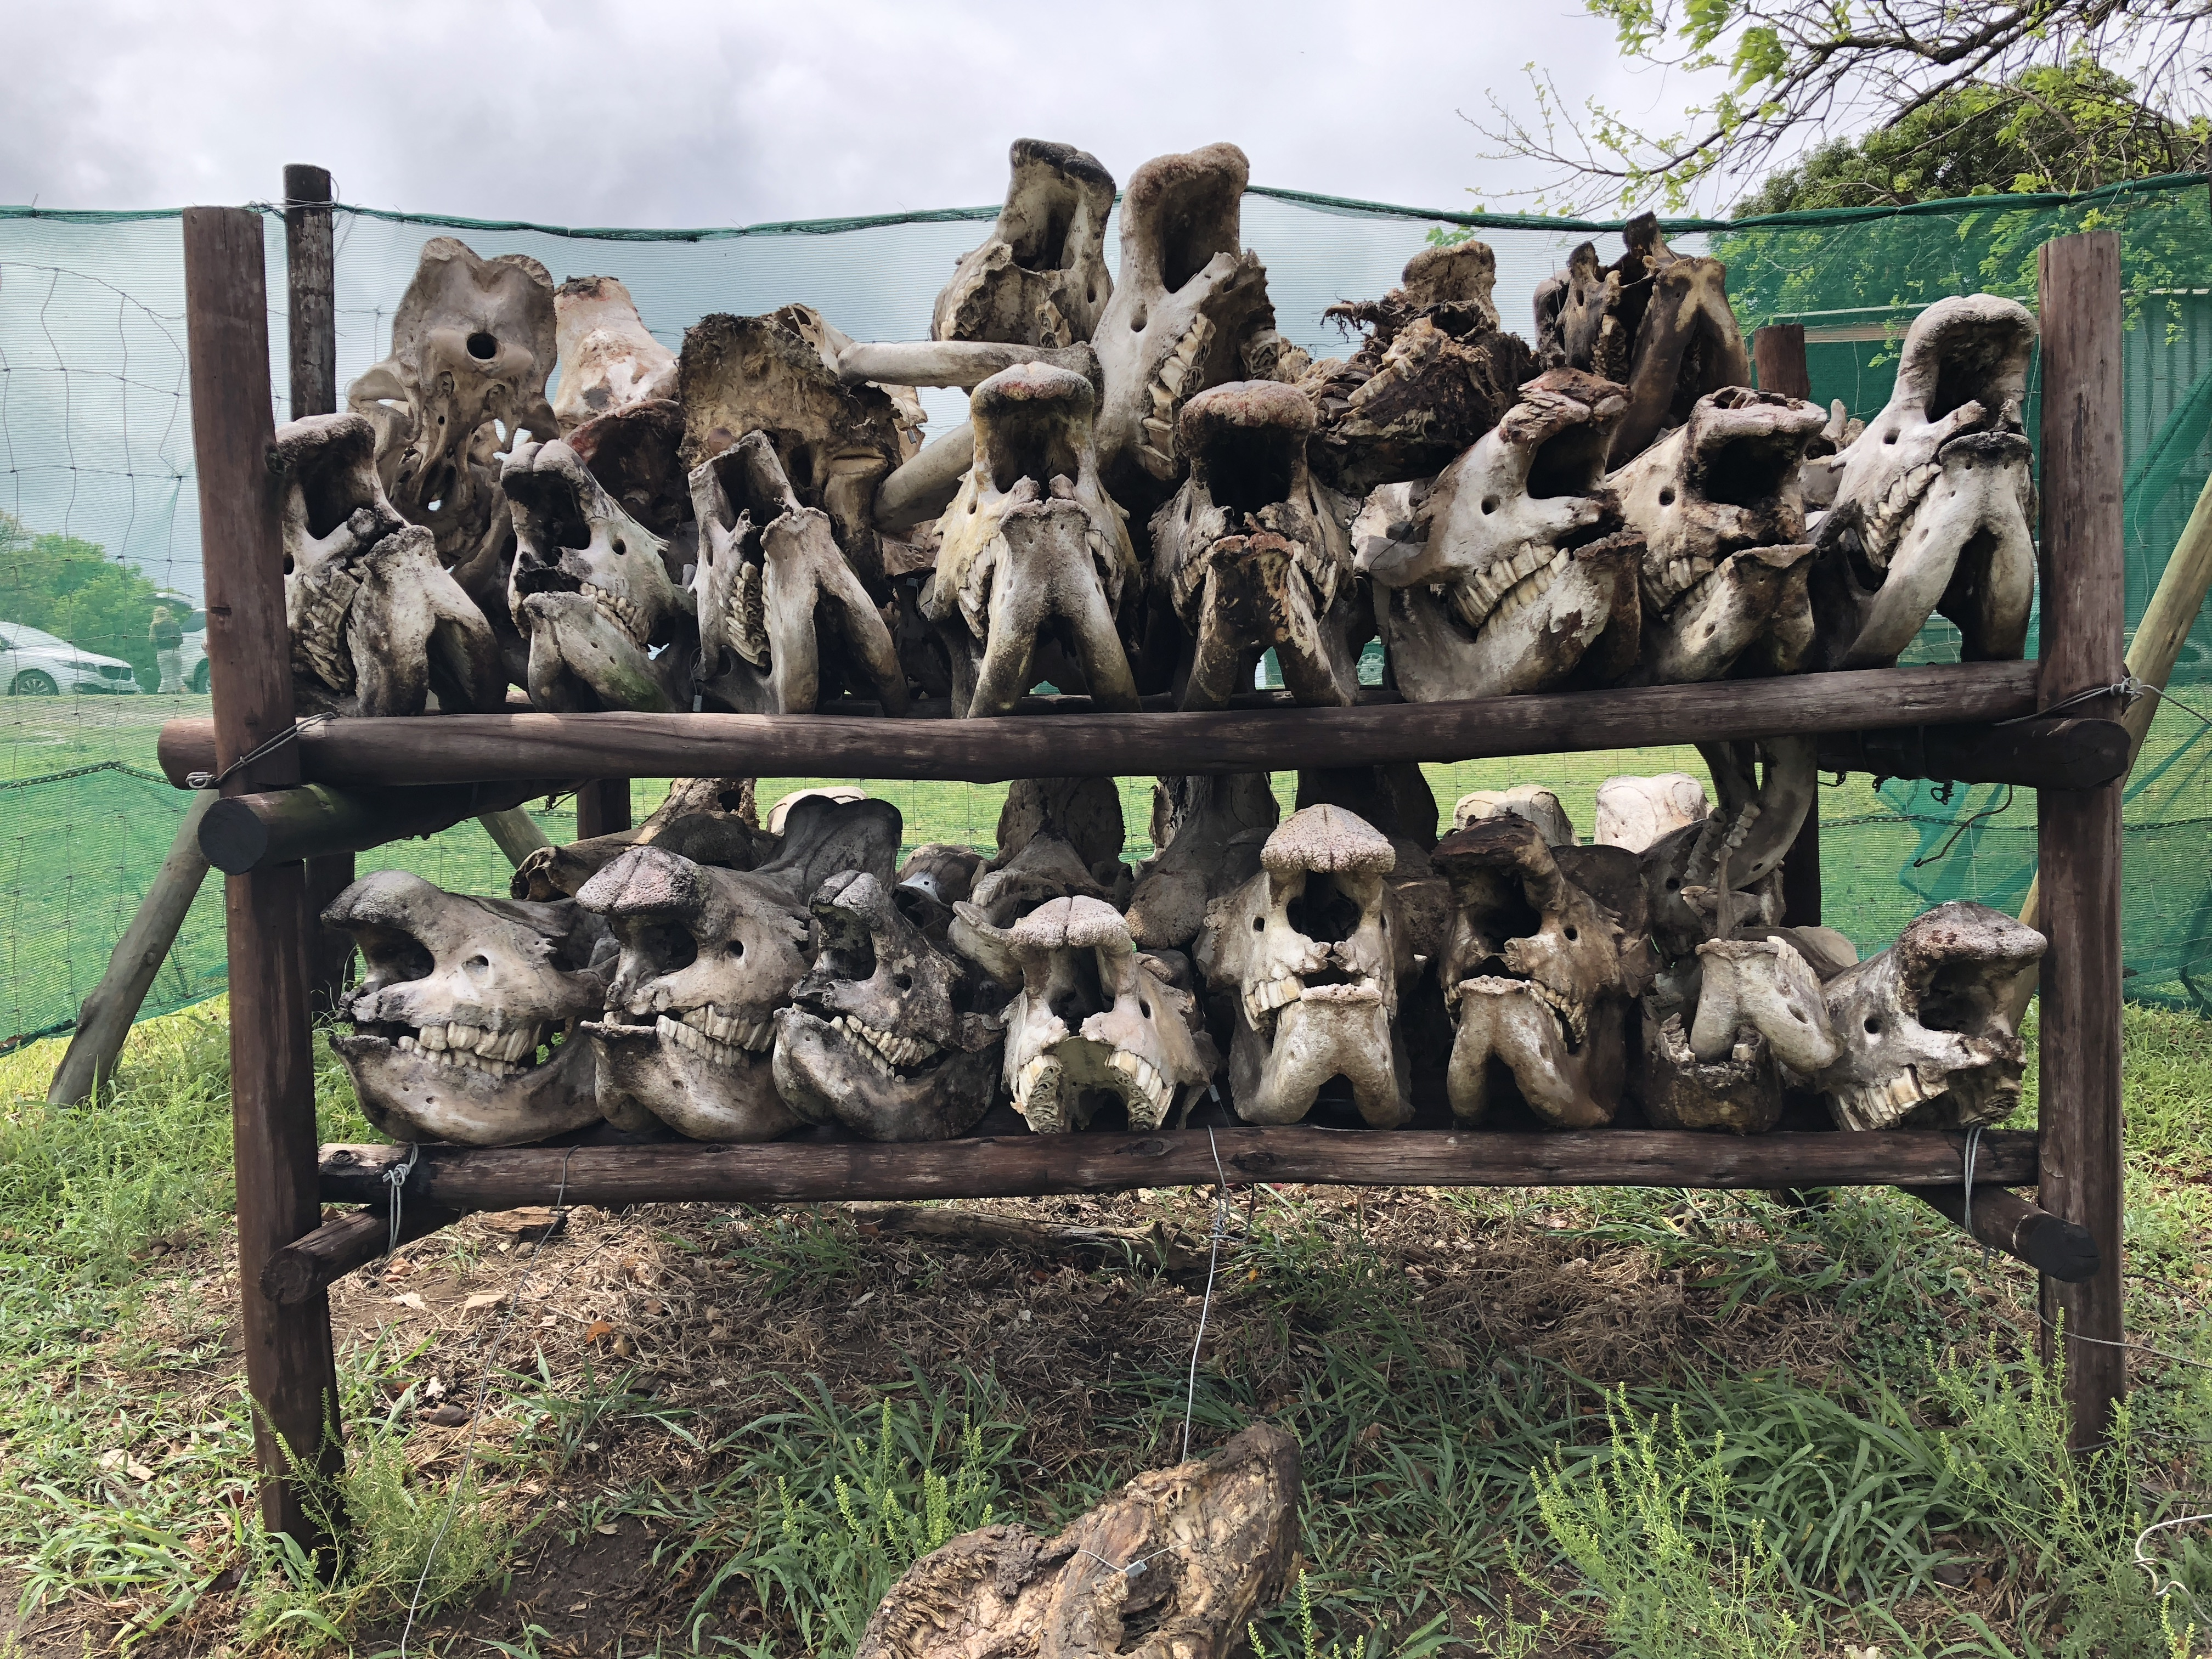 Skulls of poached rhino skulls outside ranger station in South Africa (Credit: Gore).